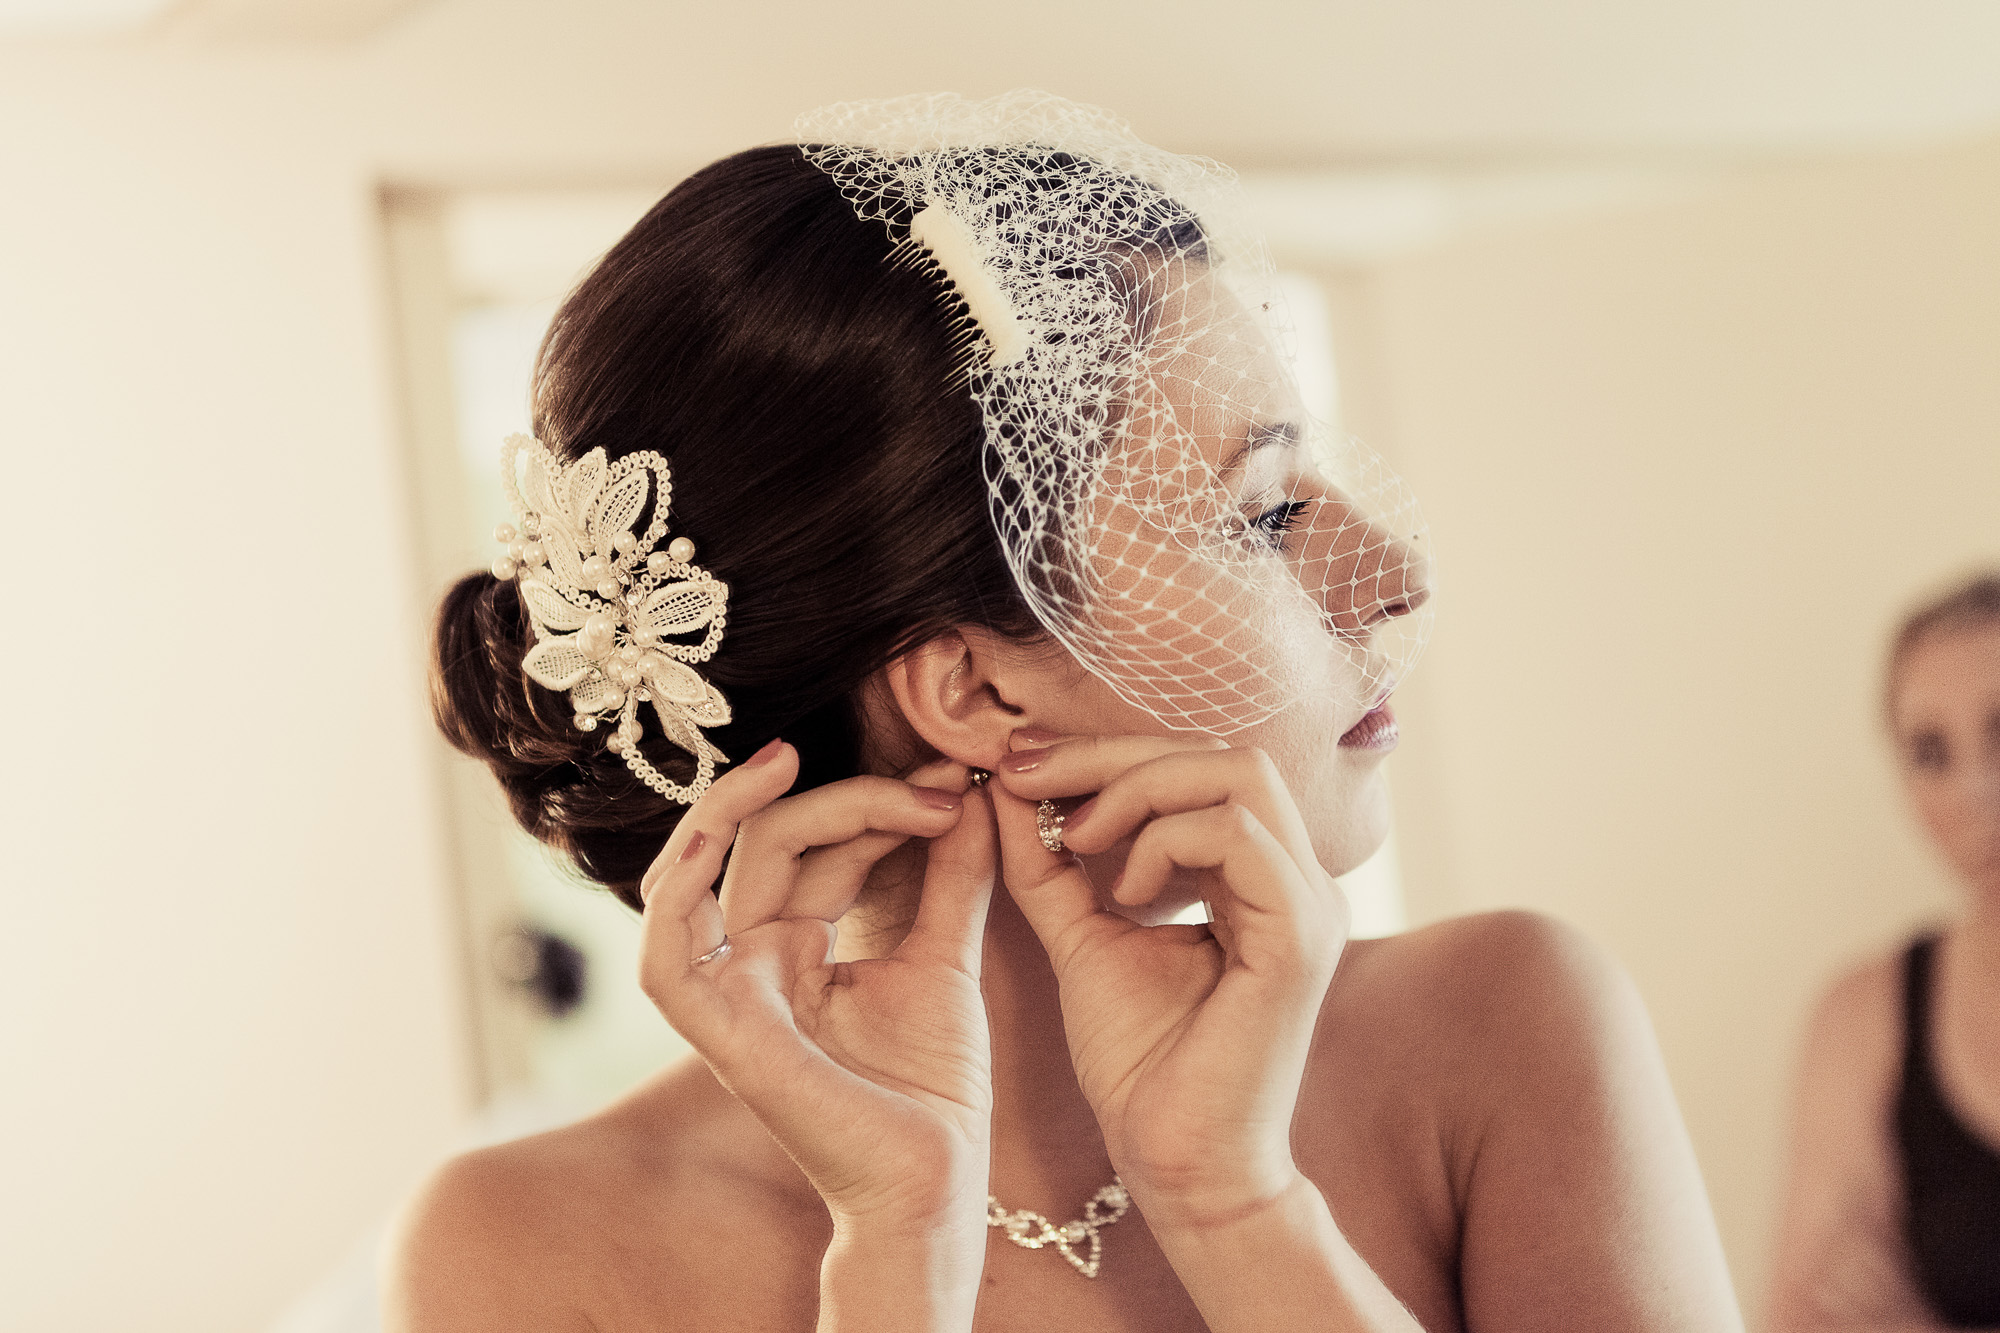 Beautiful New Jersey Bride Wedding Photographer - Jenna Perfette Photography